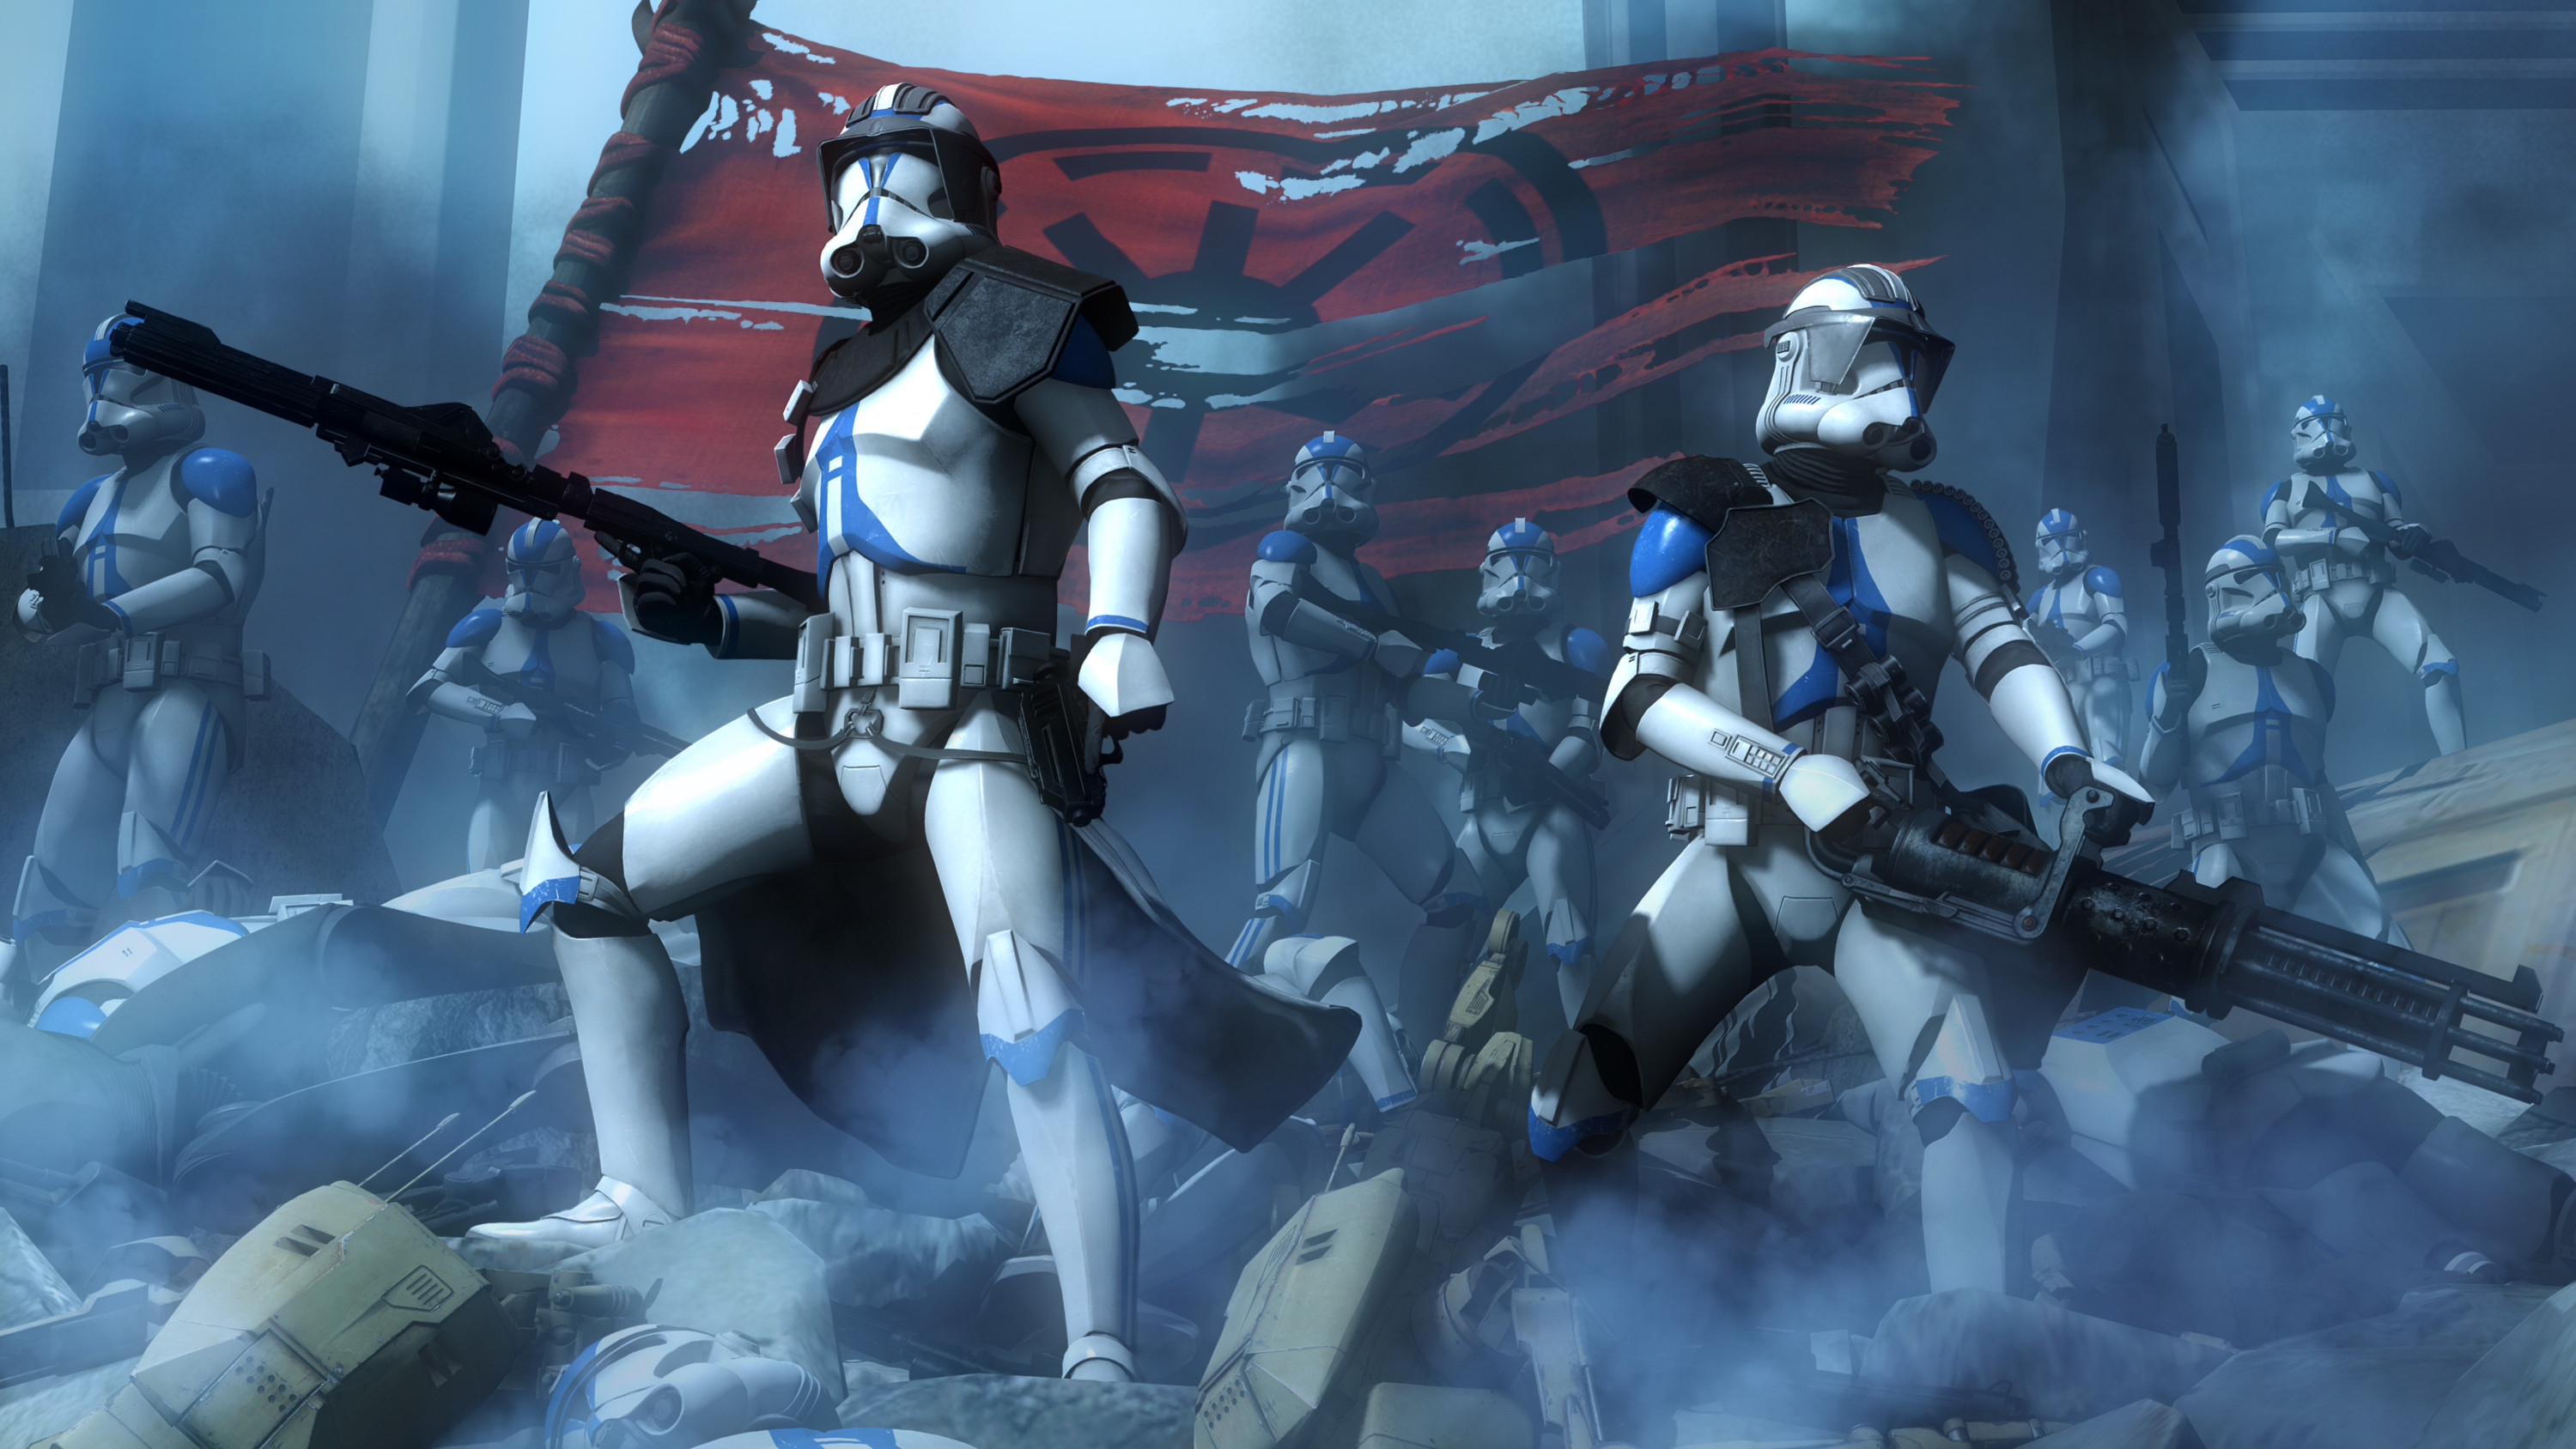 64+ clone trooper wallpapers on wallpaperplay